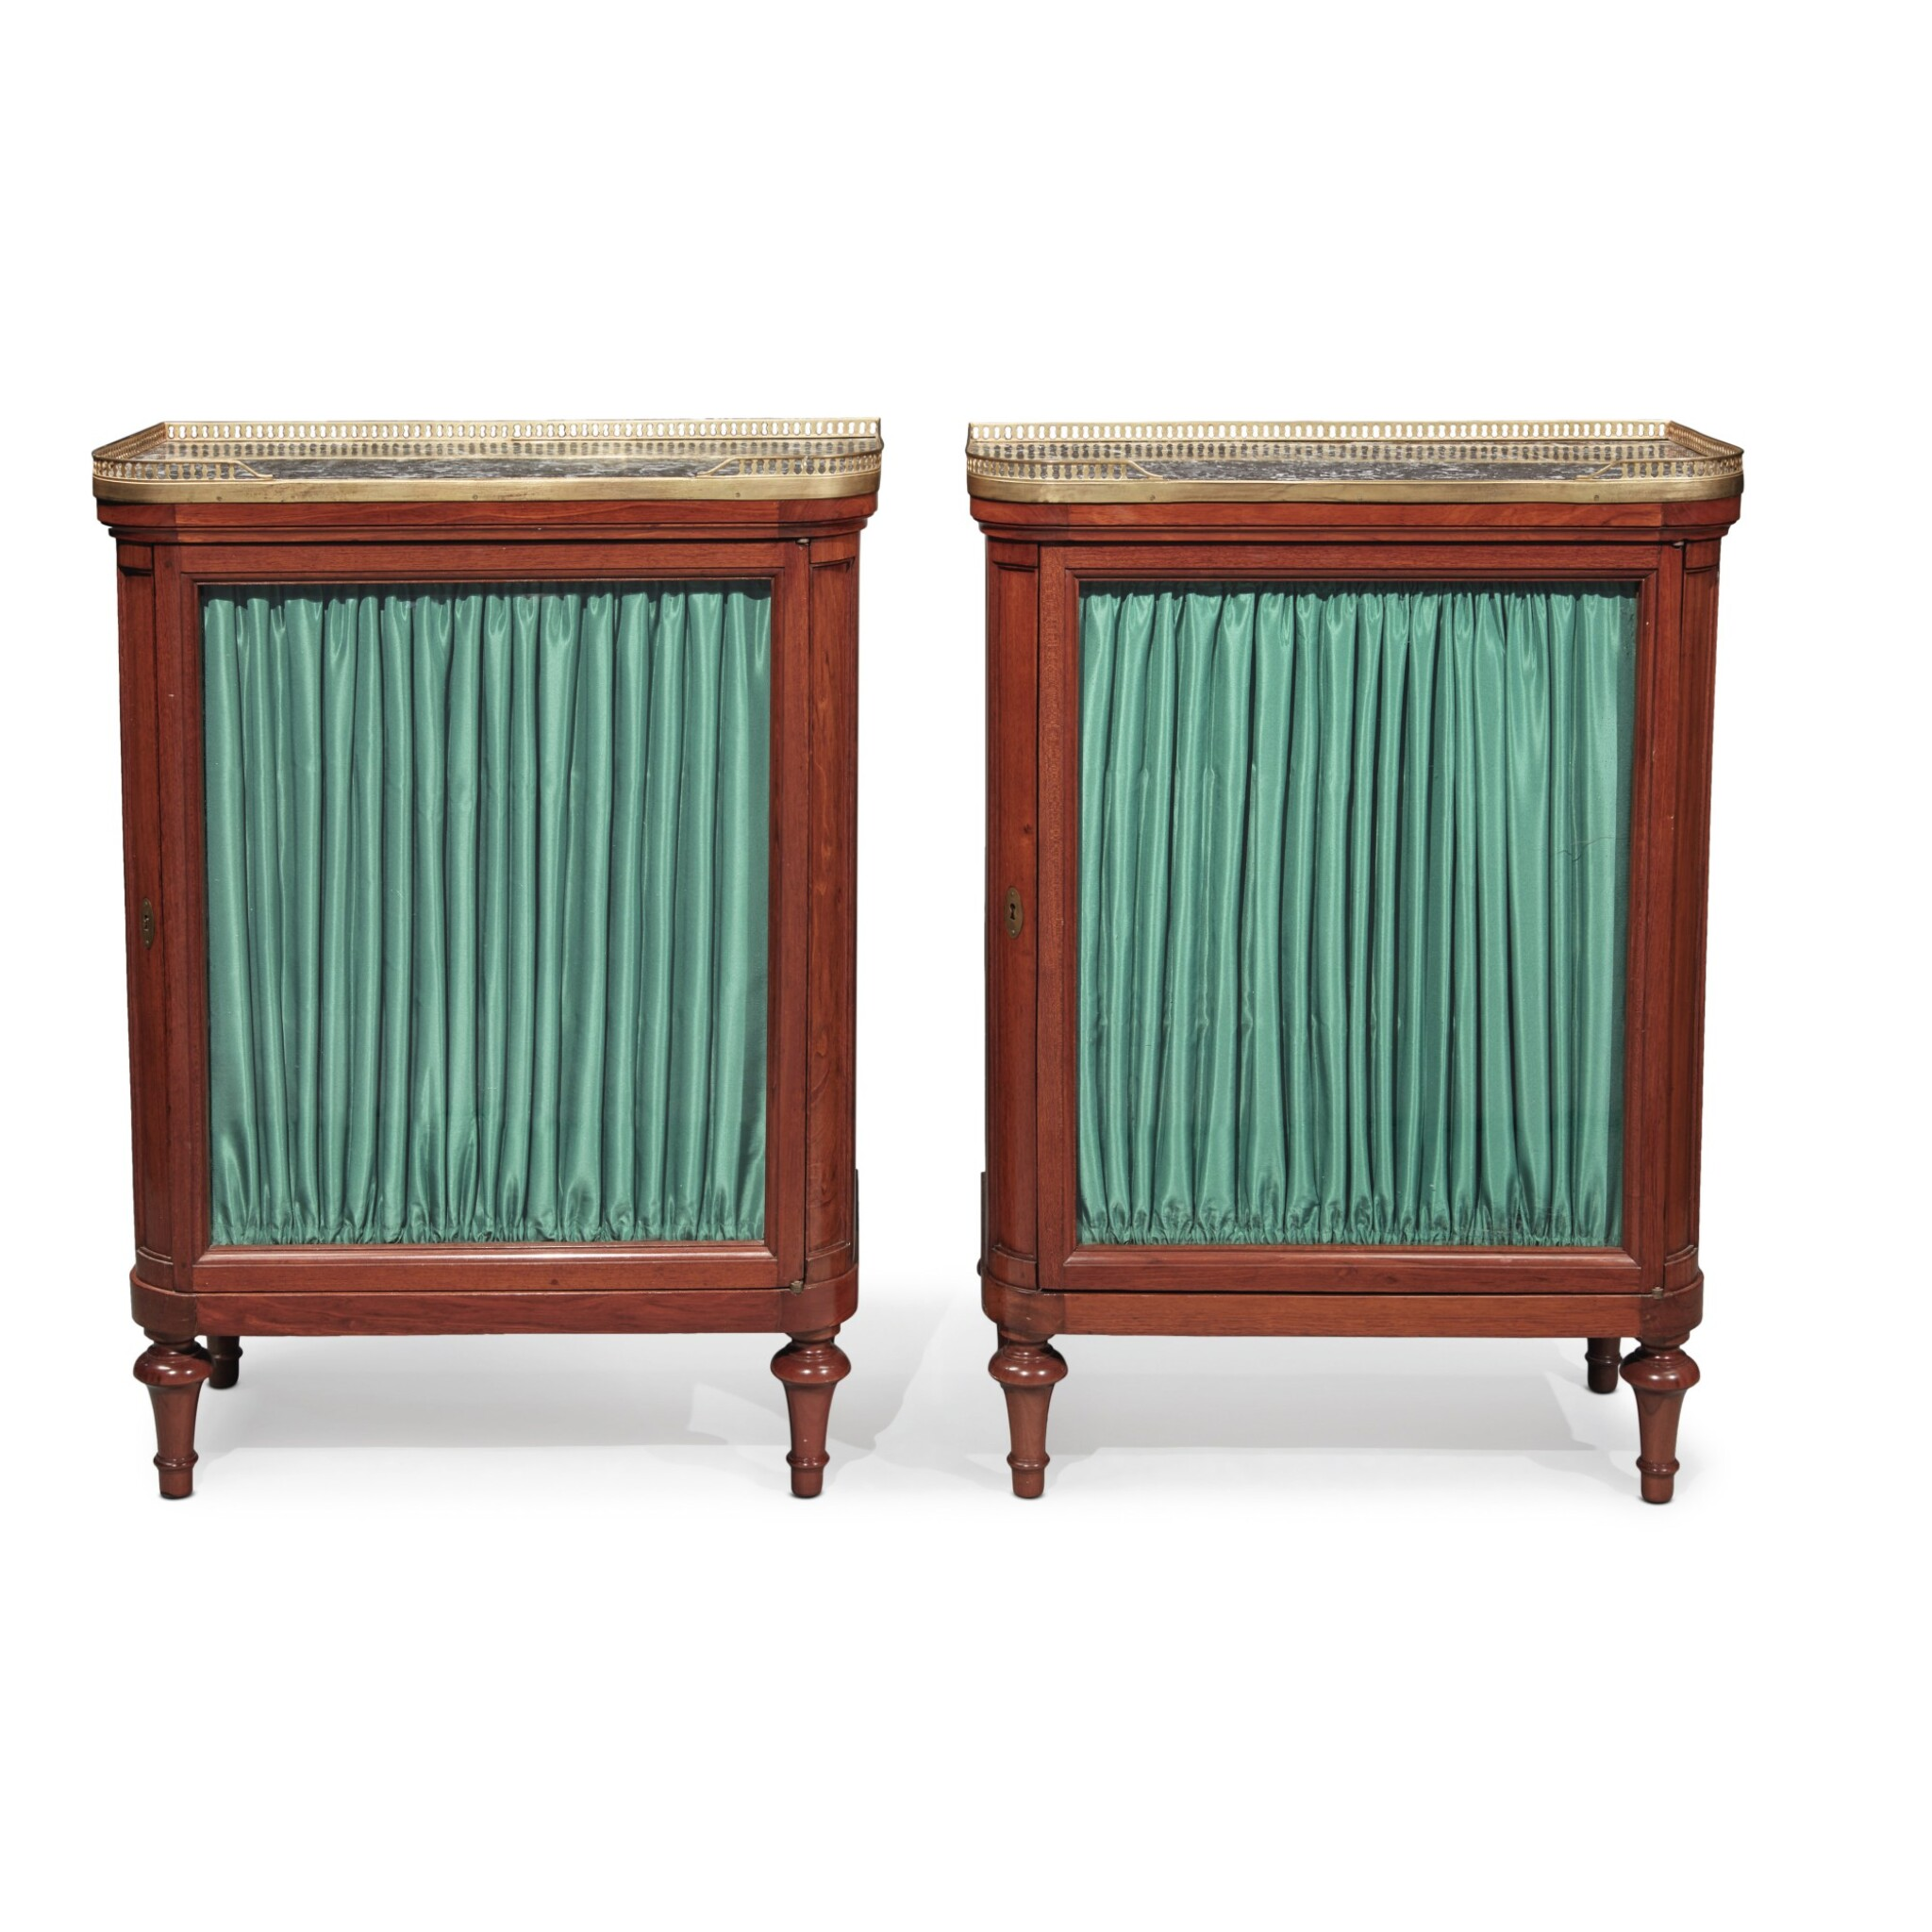 View full screen - View 1 of Lot 127. A Pair of Louis XVI Mahogany Side Cabinets by Jean-François Leleu, Second Half 18th Century.